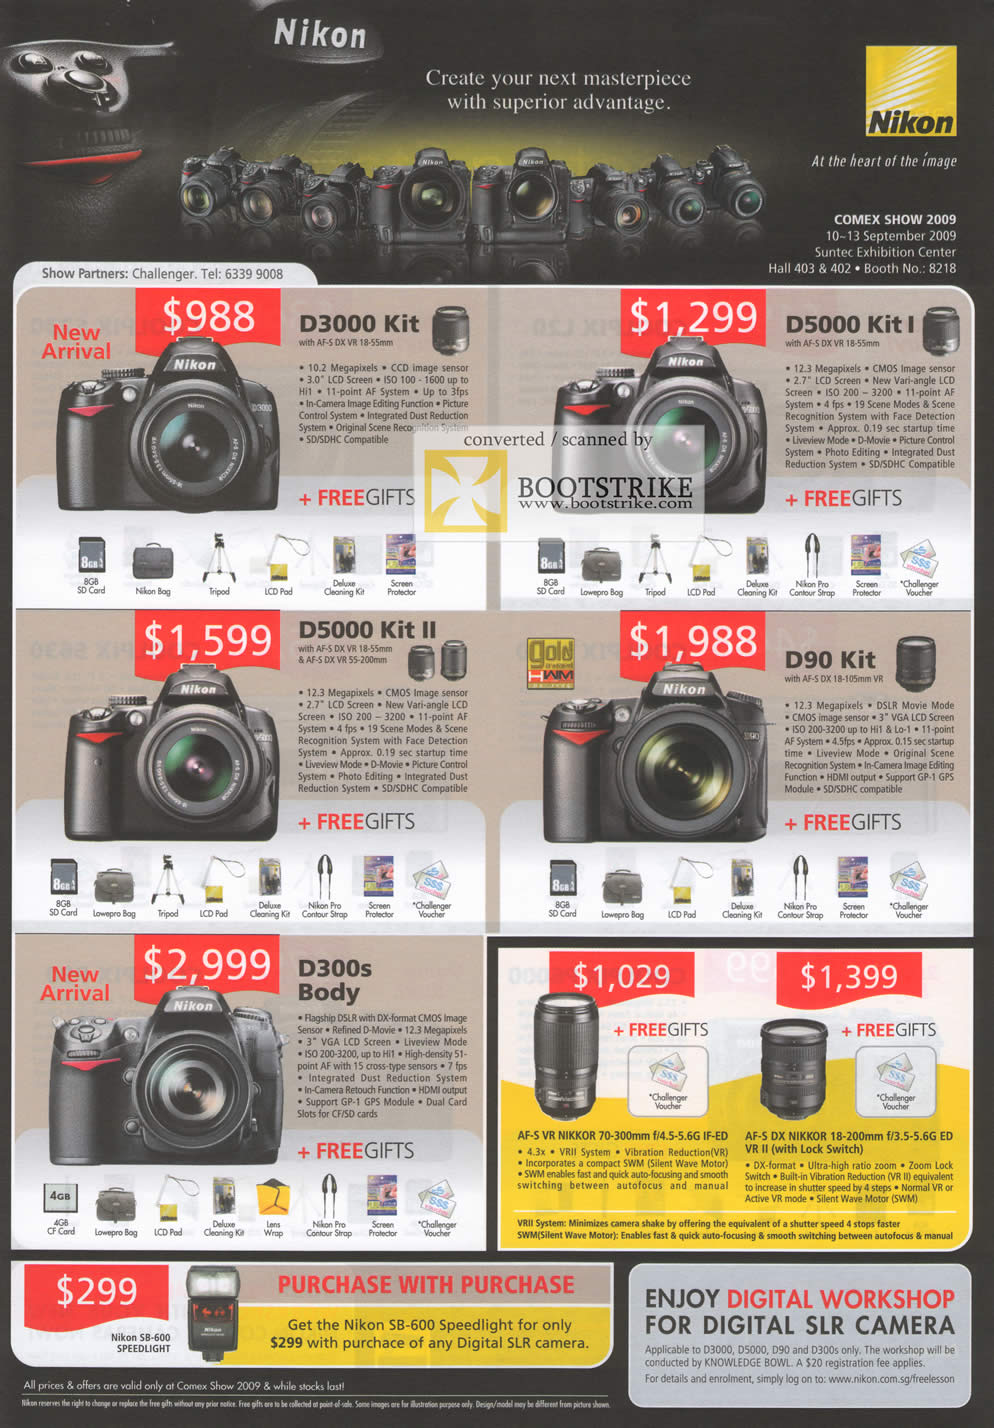 Comex 2009 price list image brochure of Nikon Digital Cameras D3000 D5000 D90 D300